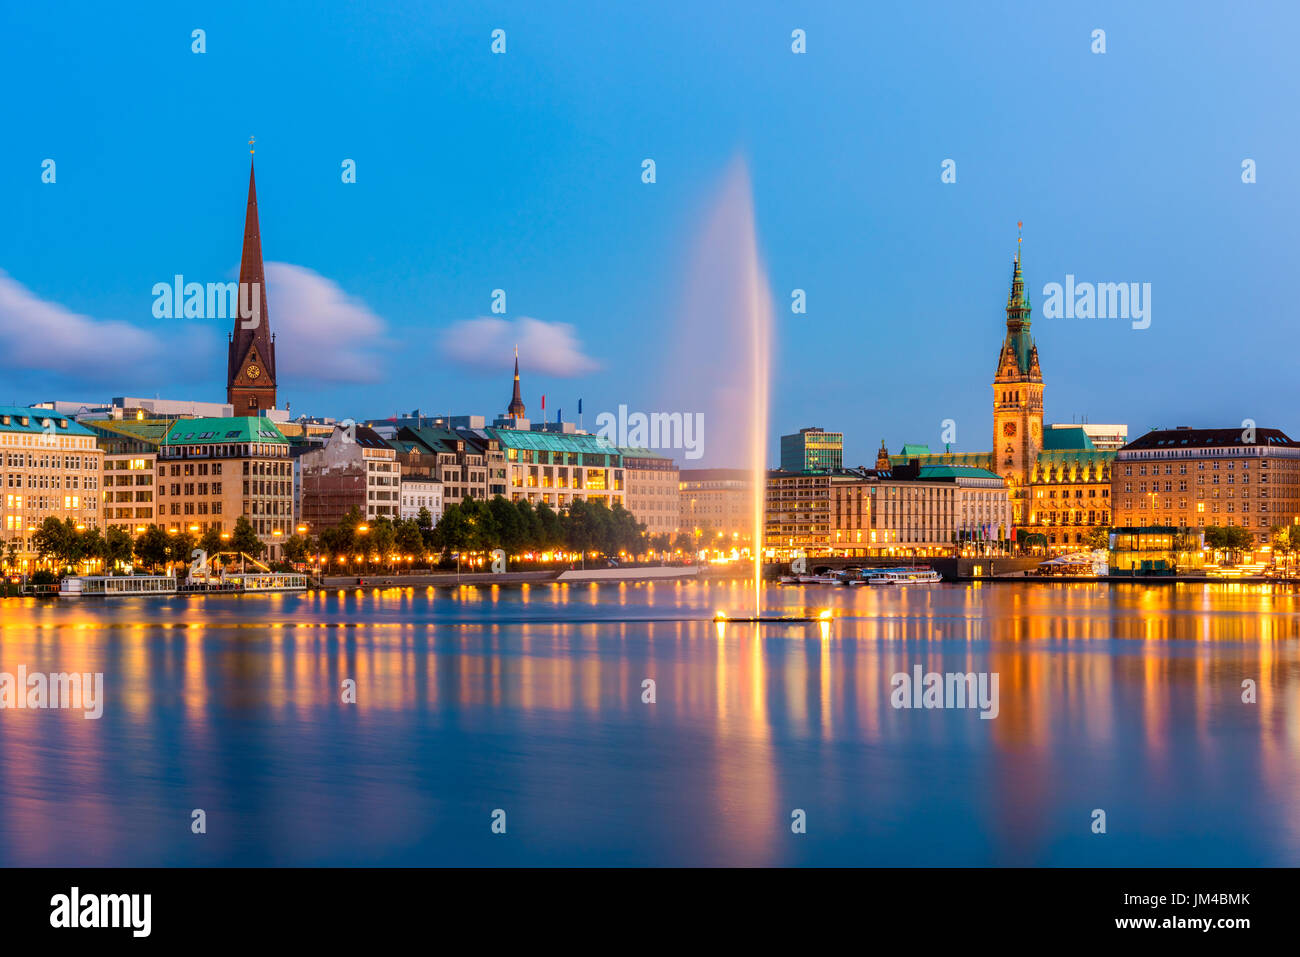 Hambourg Allemagne Skyline at Dusk Photo Stock